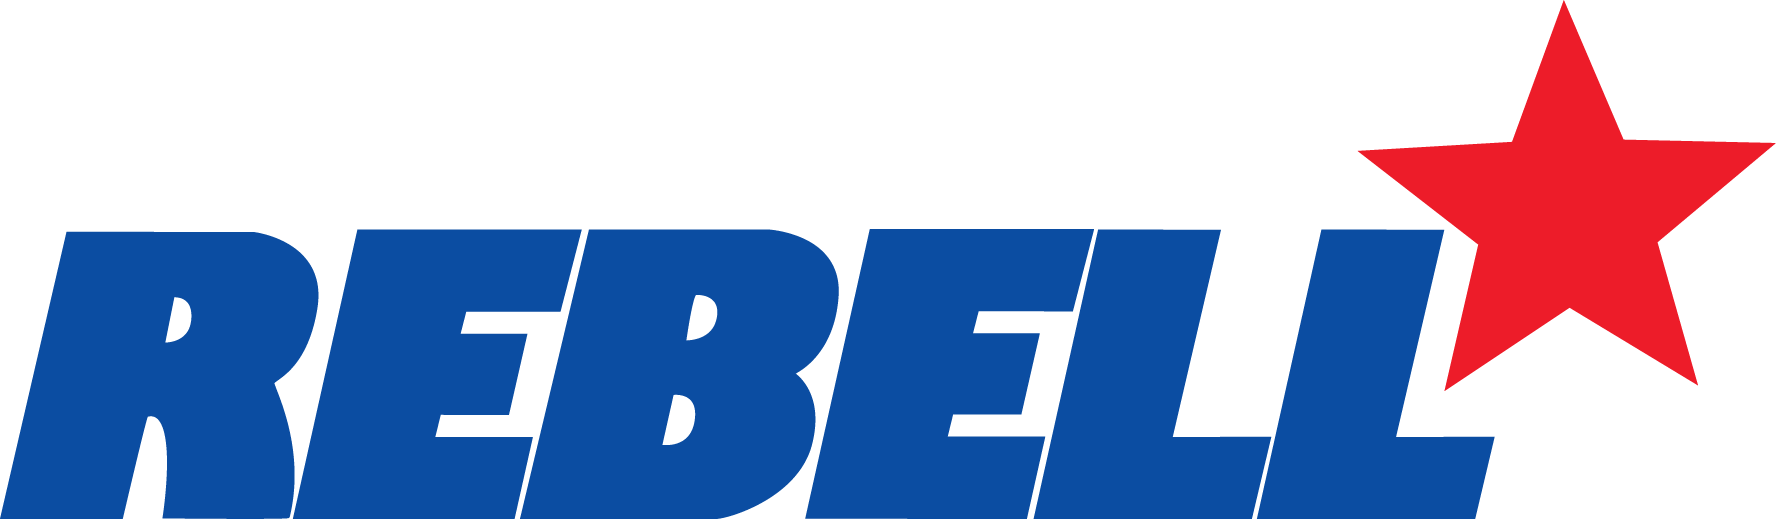 cropped-rebell_logo.png